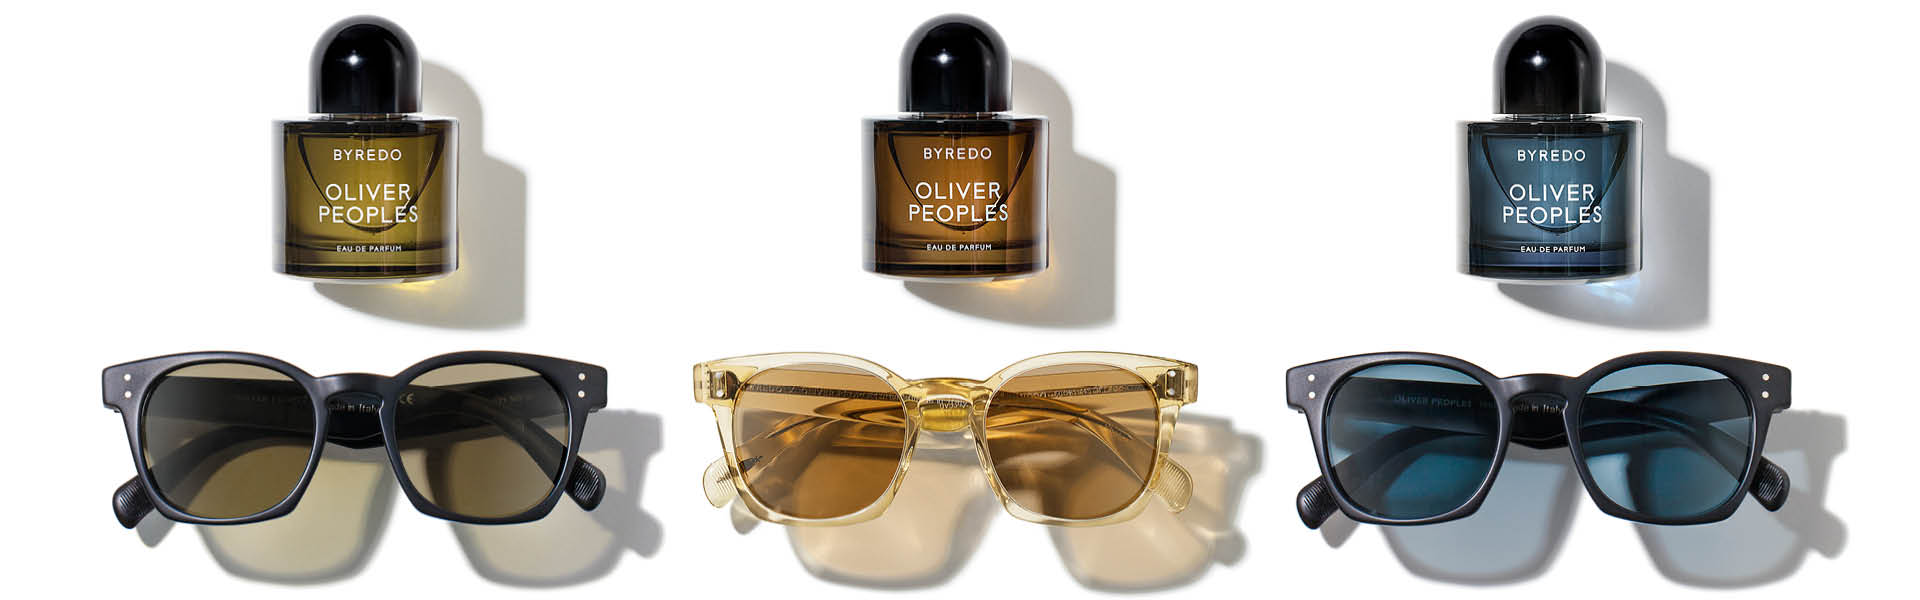 a739b660d16d Smelly News  Byredo Launches Oliver Peoples Collaboration at ...